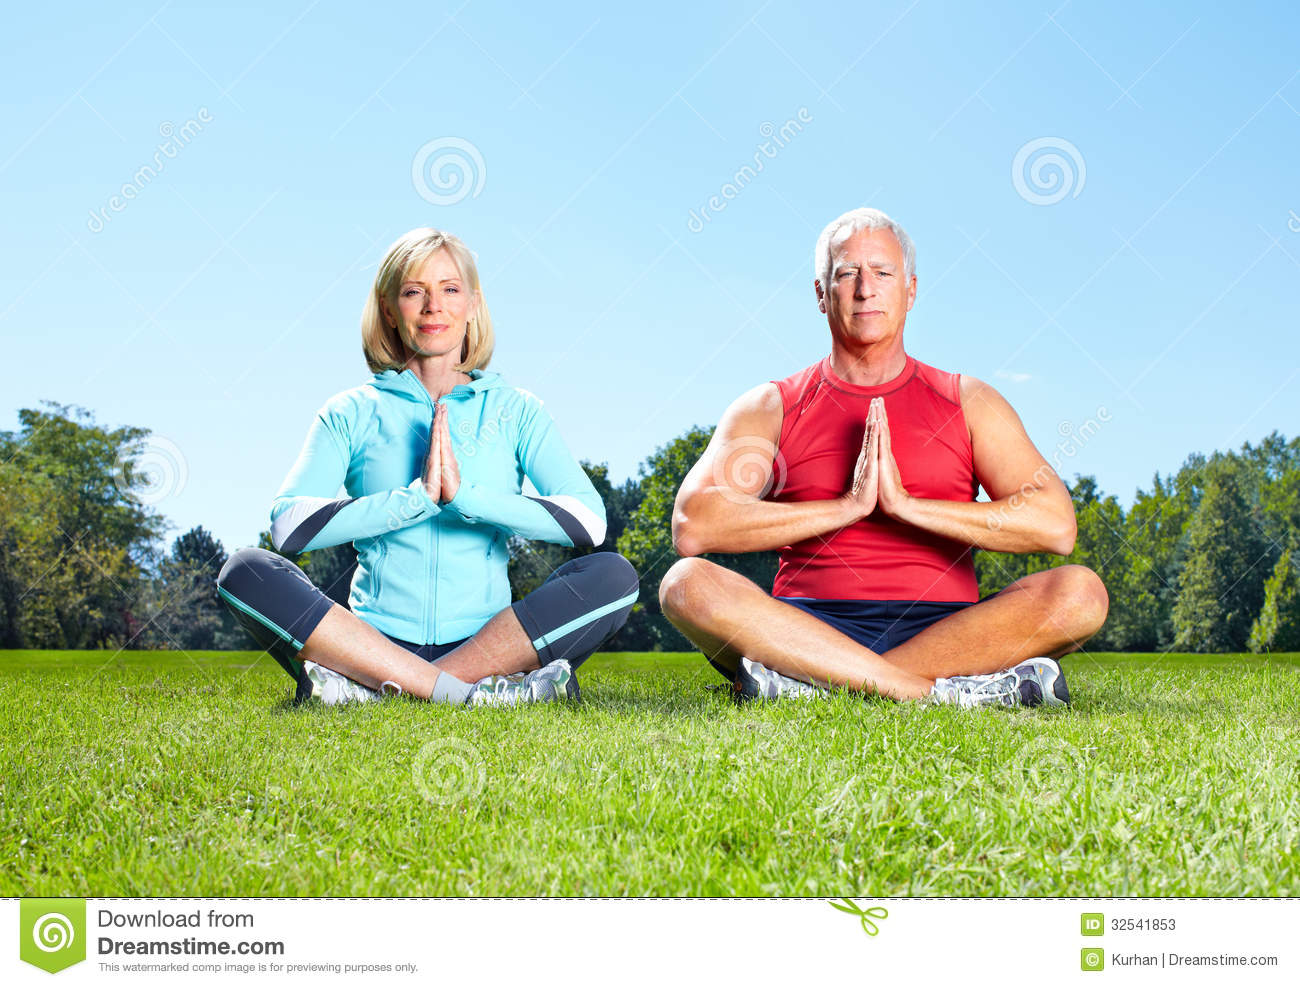 gym-fitness-healthy-lifestyle-senior-couple-park-32541853.jpg